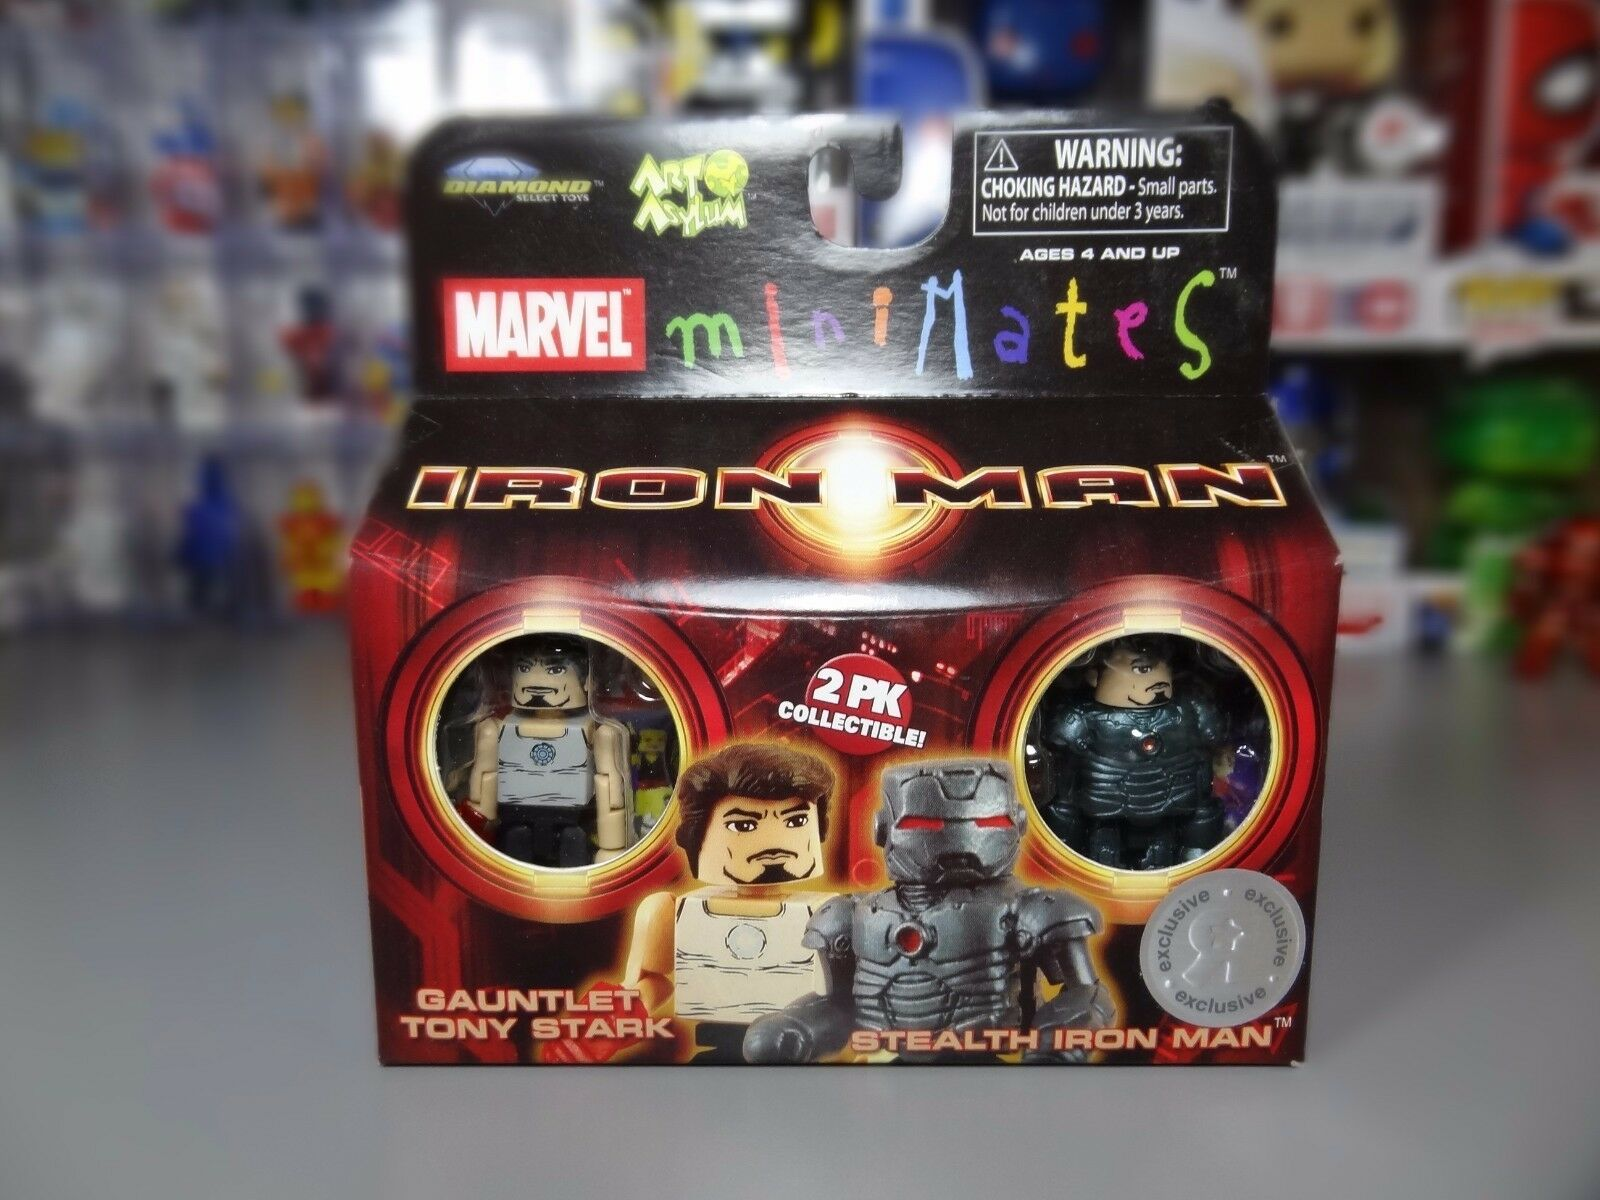 Marvel Minimates Toys R Us Series 01 Gauntlet Tony Stark / Stealth Iron Man